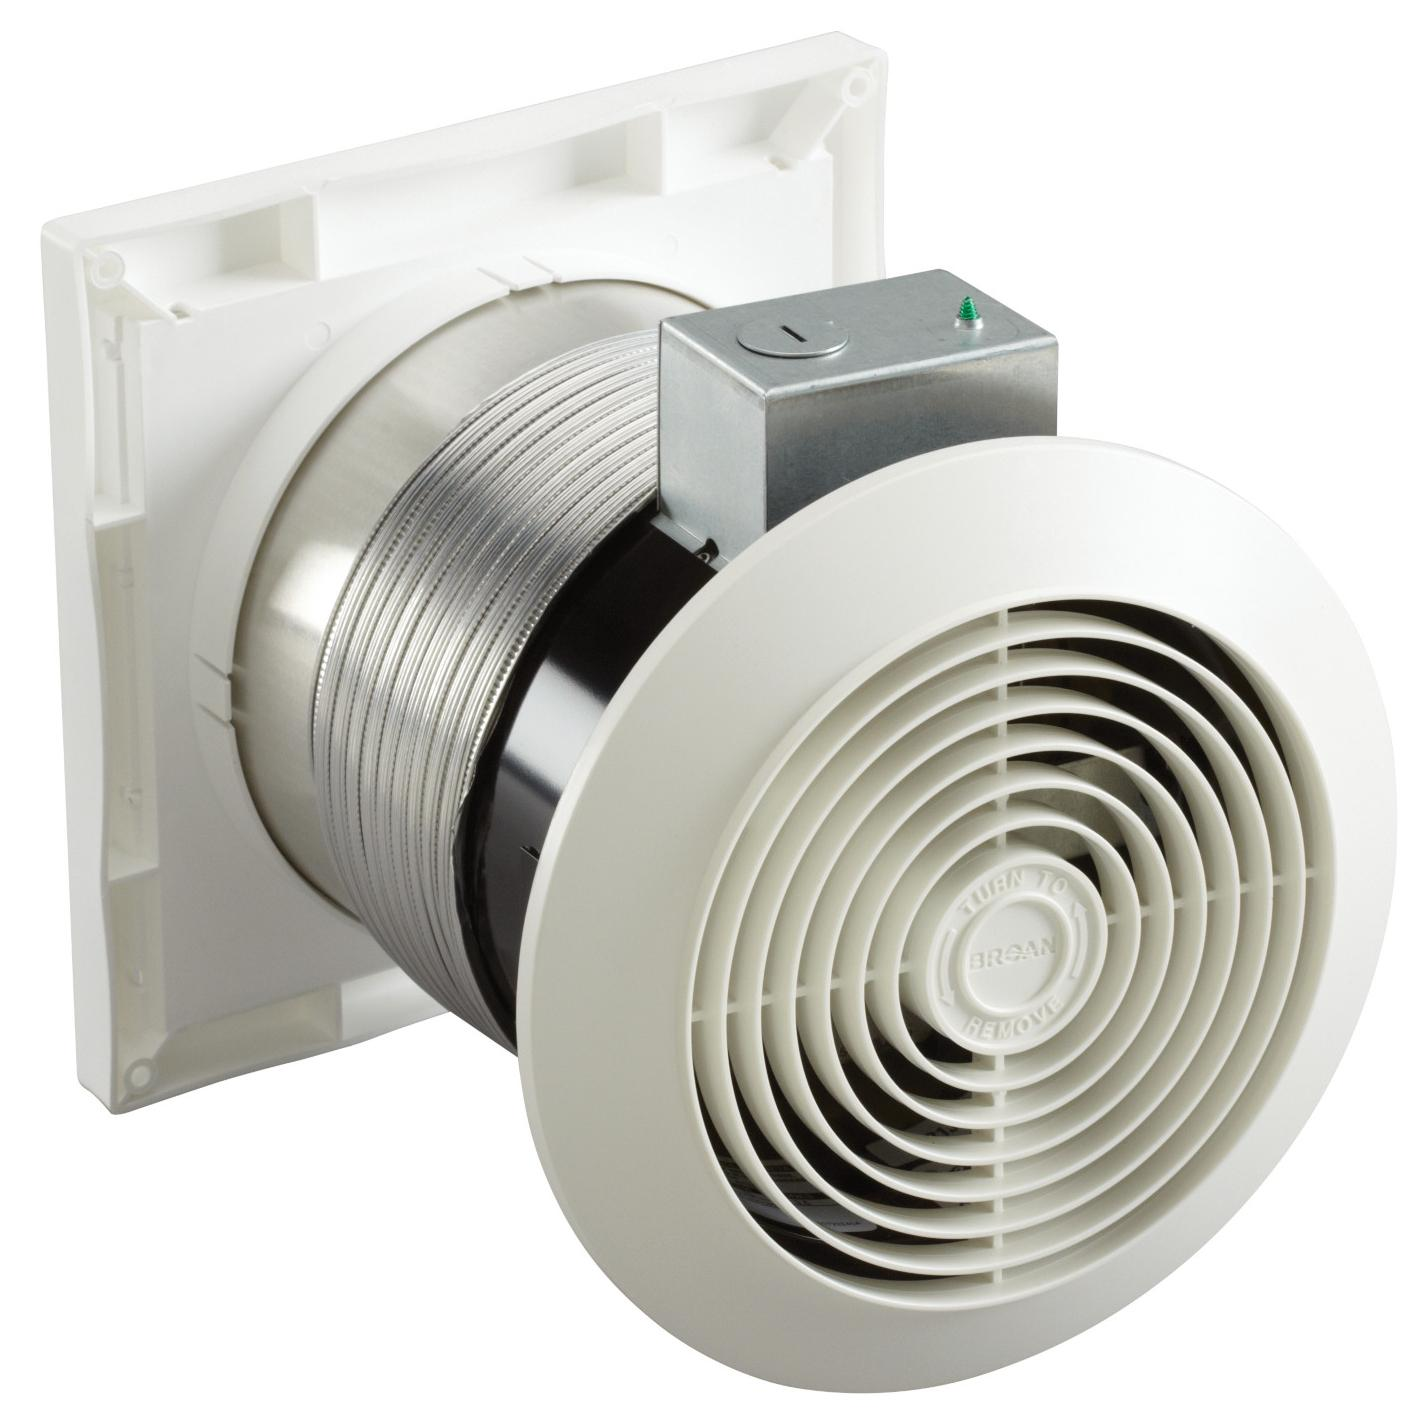 Bathroom Exhaust Fans Through Wall : Broan m through wall fan inch cfm sones